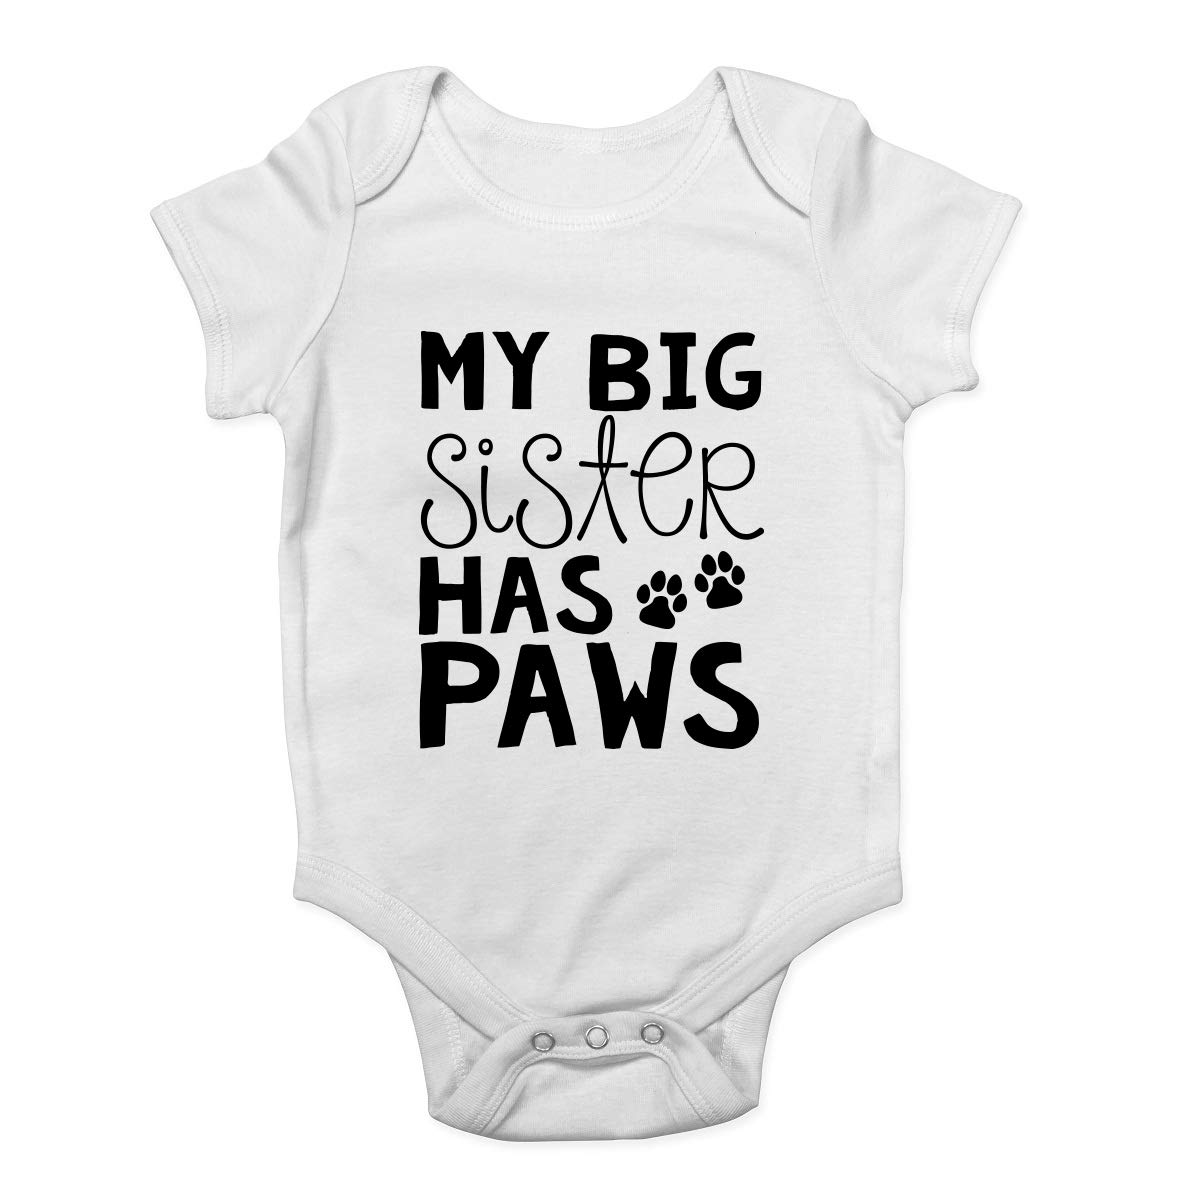 I LOVE MY BIG BROTHER THIS MUCH Funny Girls BabyGrow Bodysuit Vest Baby Clothes